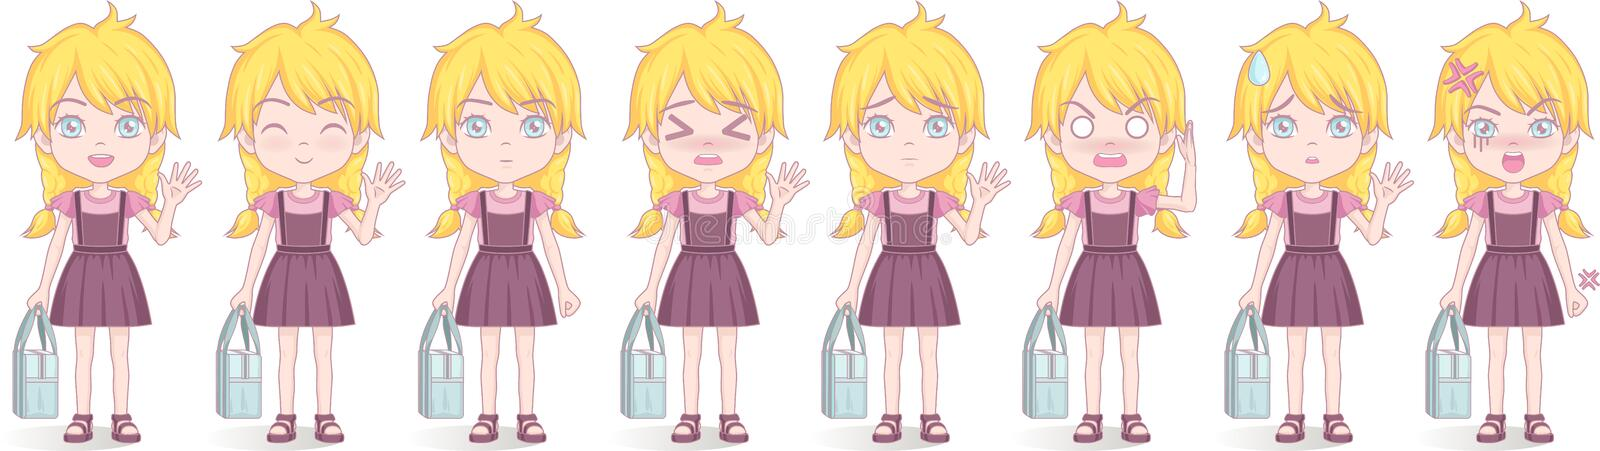 Anime manga girl, Cartoon character in Japanese style. School girl in a violet sundress. Set of emotions. stock illustration